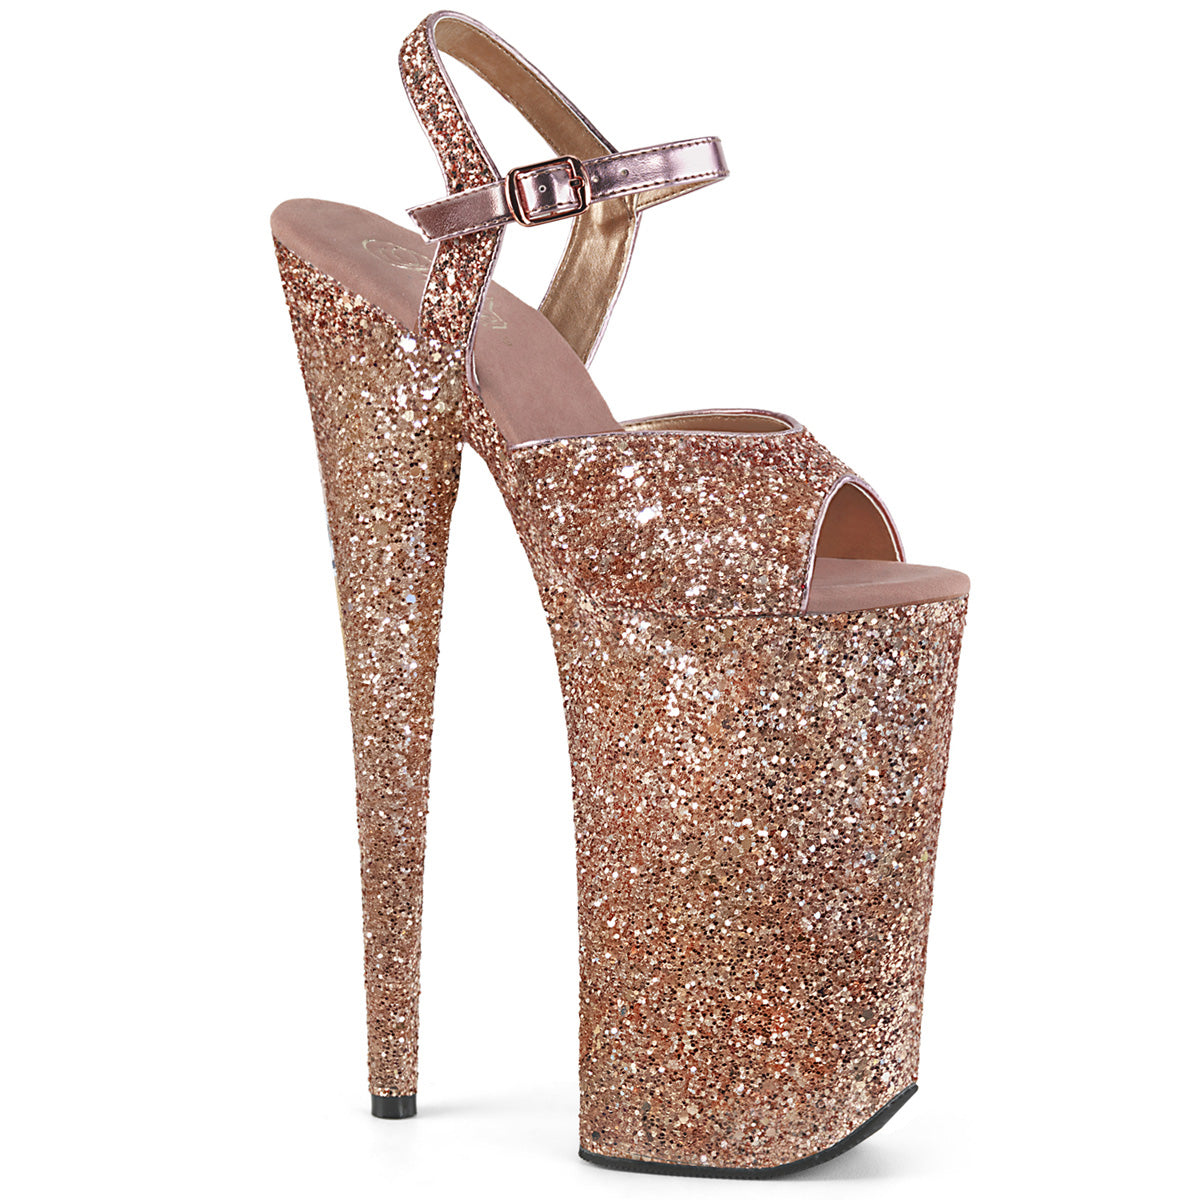 Heel Rose Gold Glitter Strippers Shoes